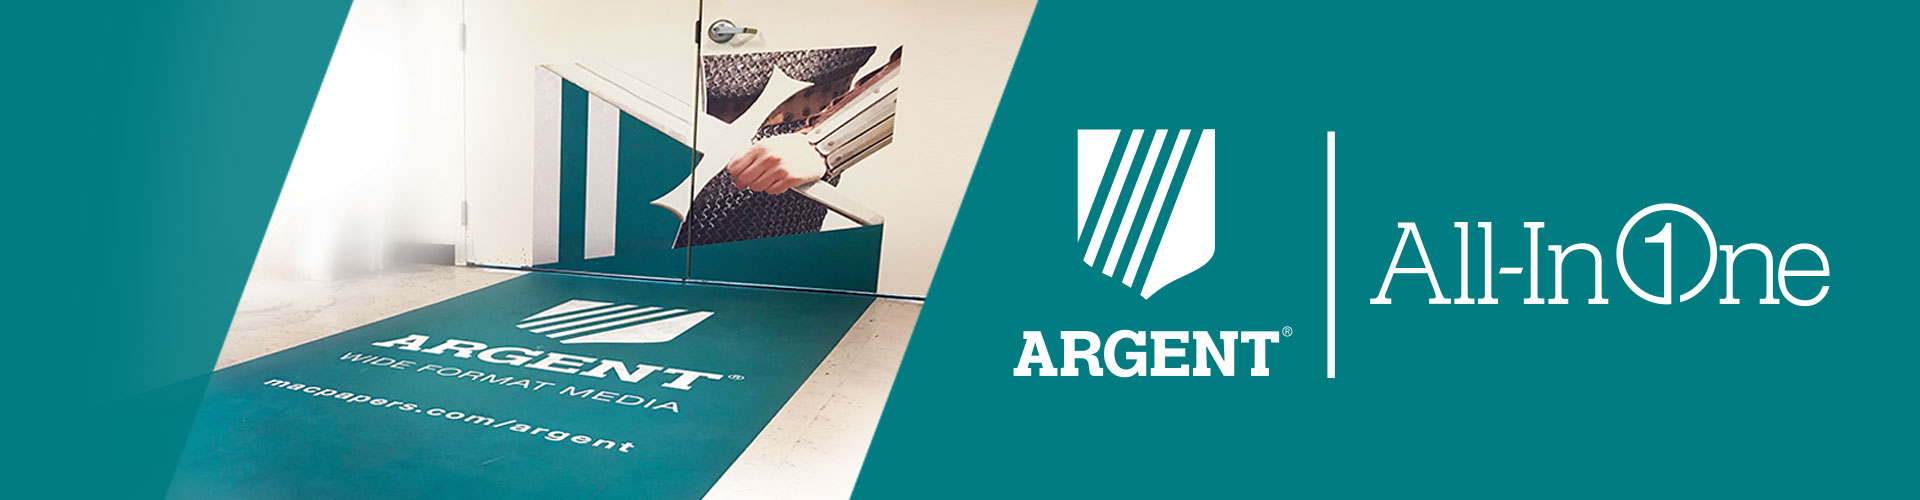 1920x500-argent-all-in-one